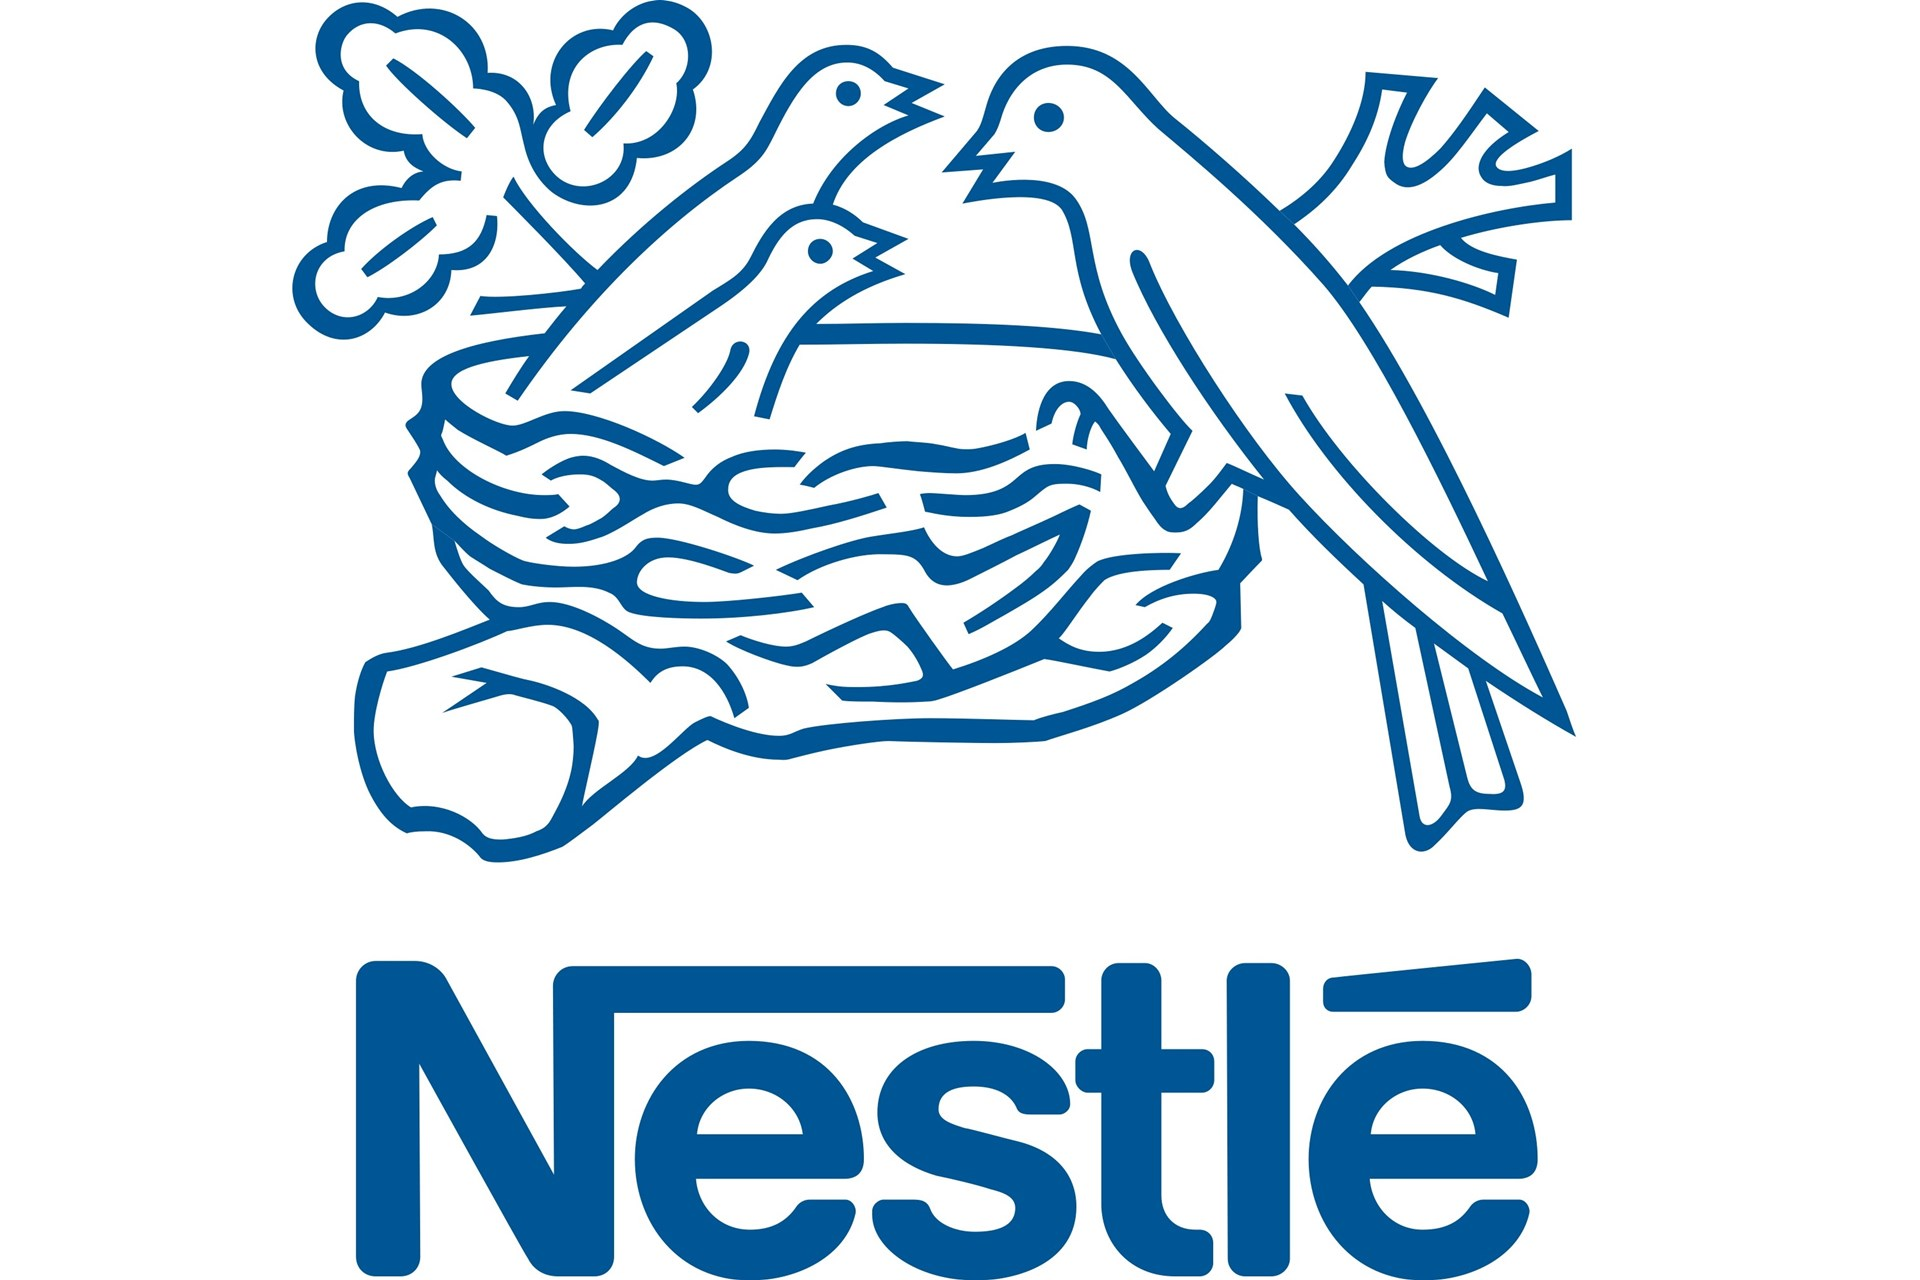 Nestle Wallpapers and Background Images   stmednet 1920x1280